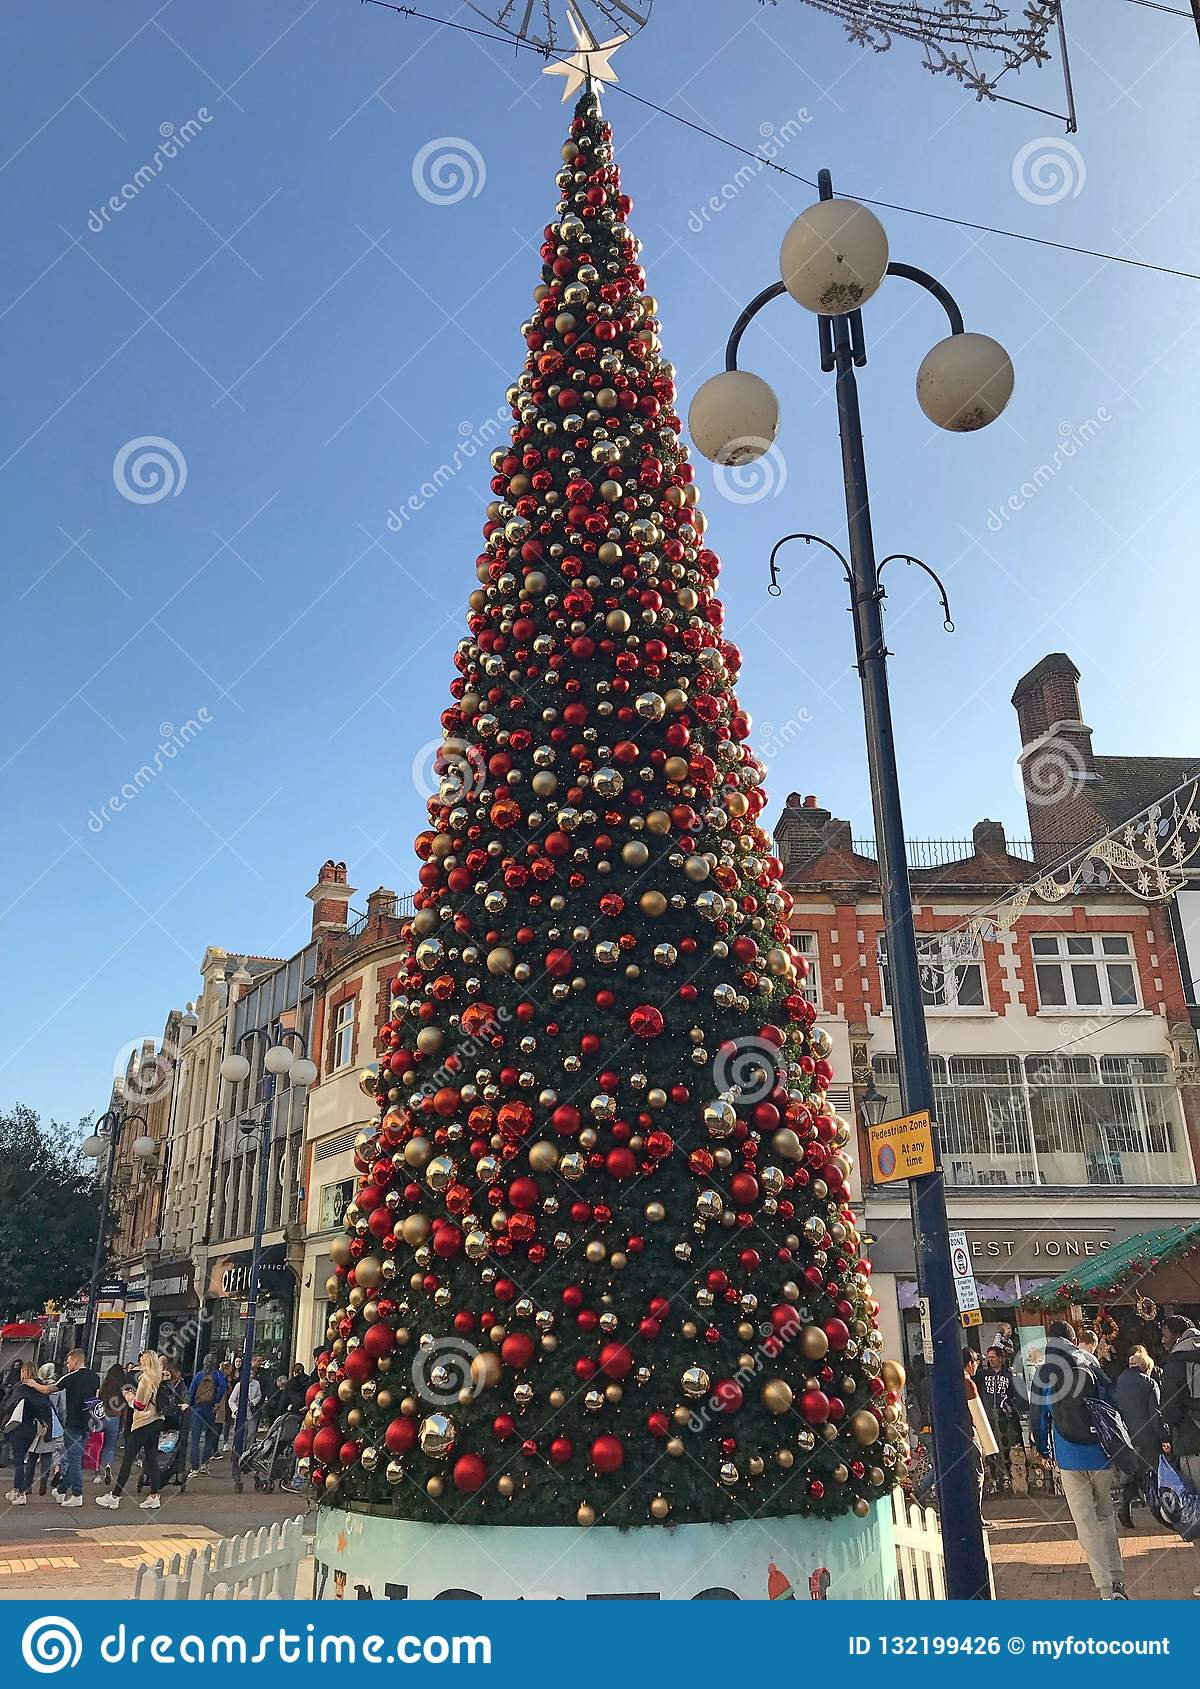 United Kingdom Christmas.Christmas Market In Kingston Editorial Photo Image Of